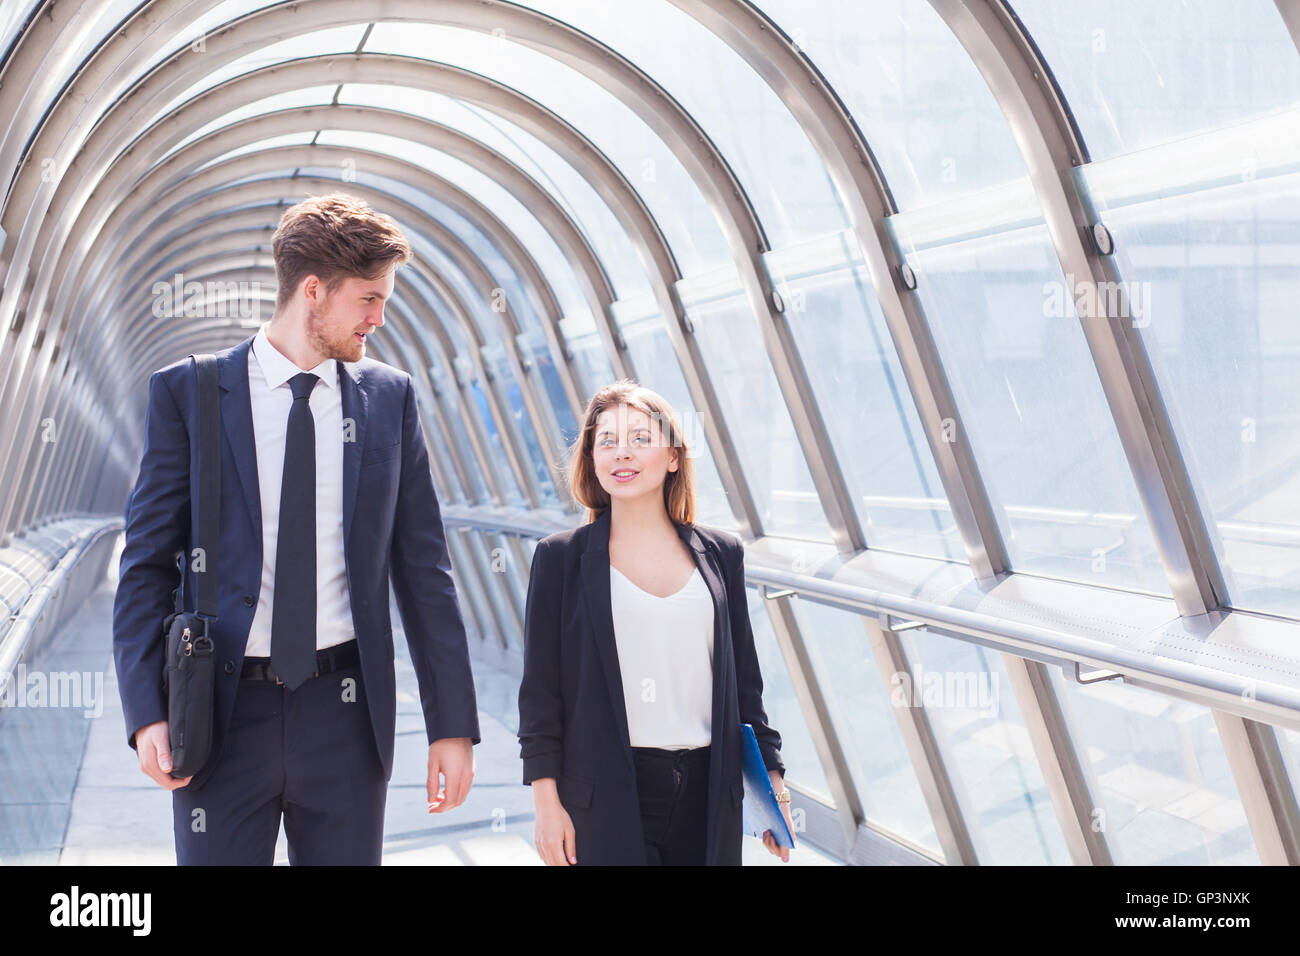 business people walking in office corridor interior - Stock Image